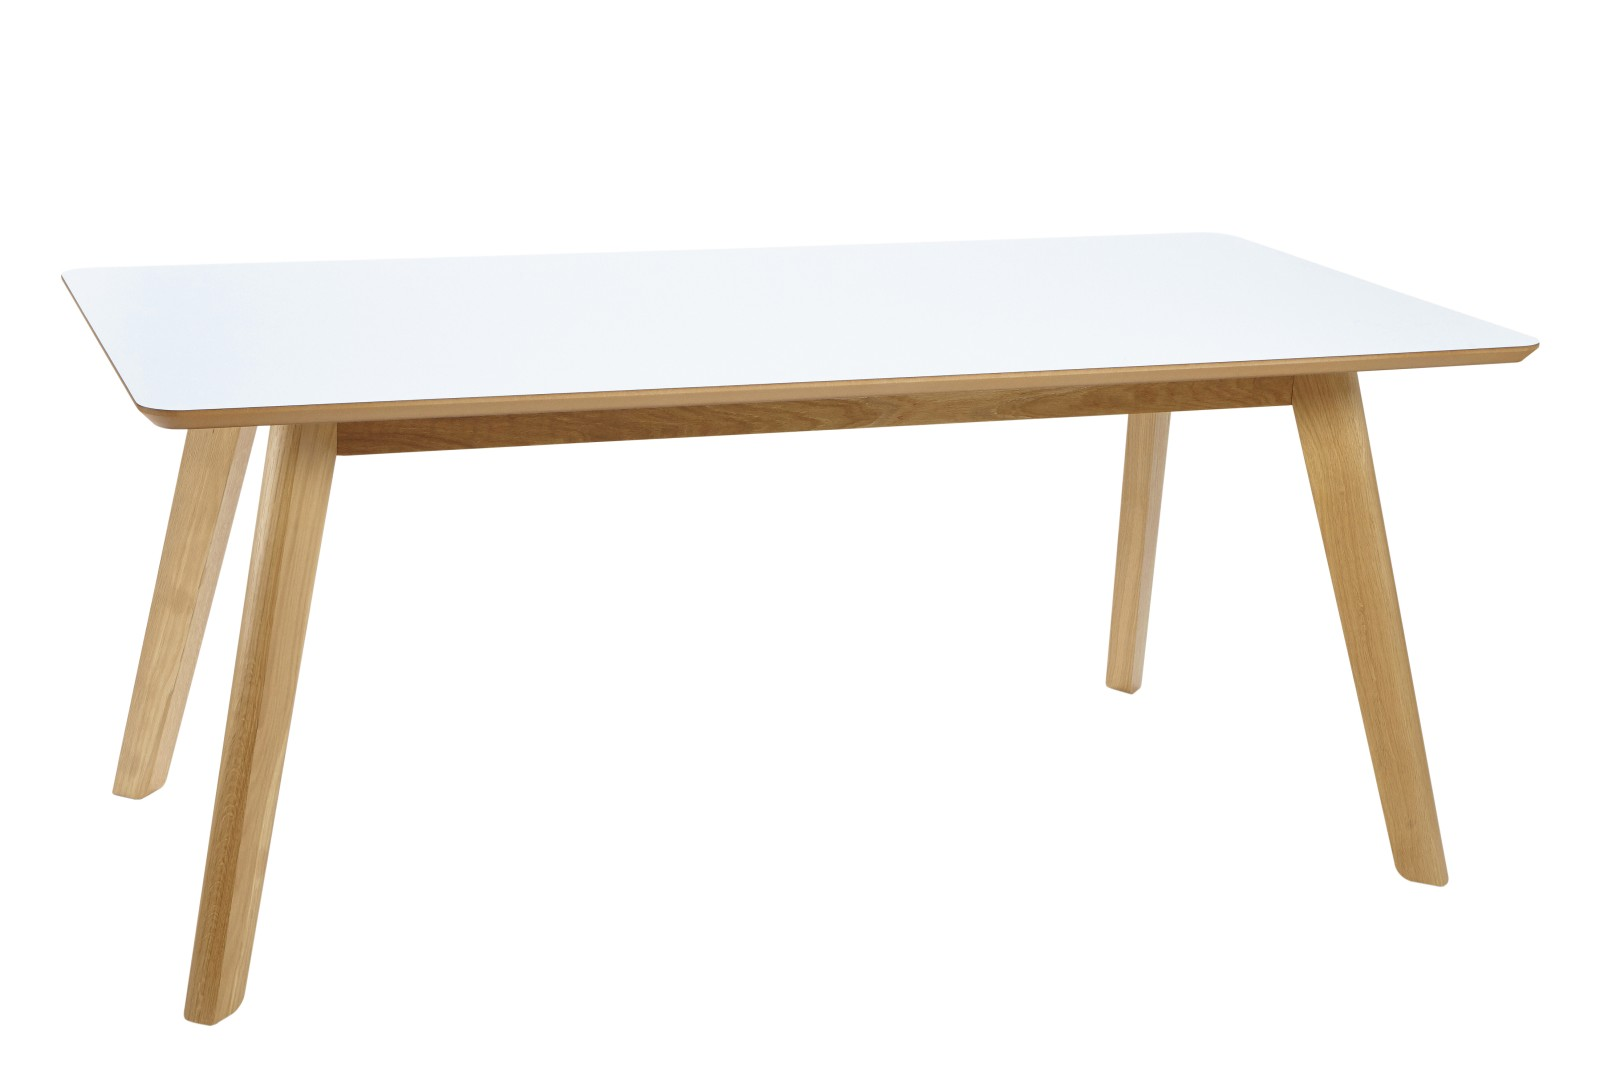 Centro Lite Meeting Table White, Oak, 200w x 100d x 75h cm